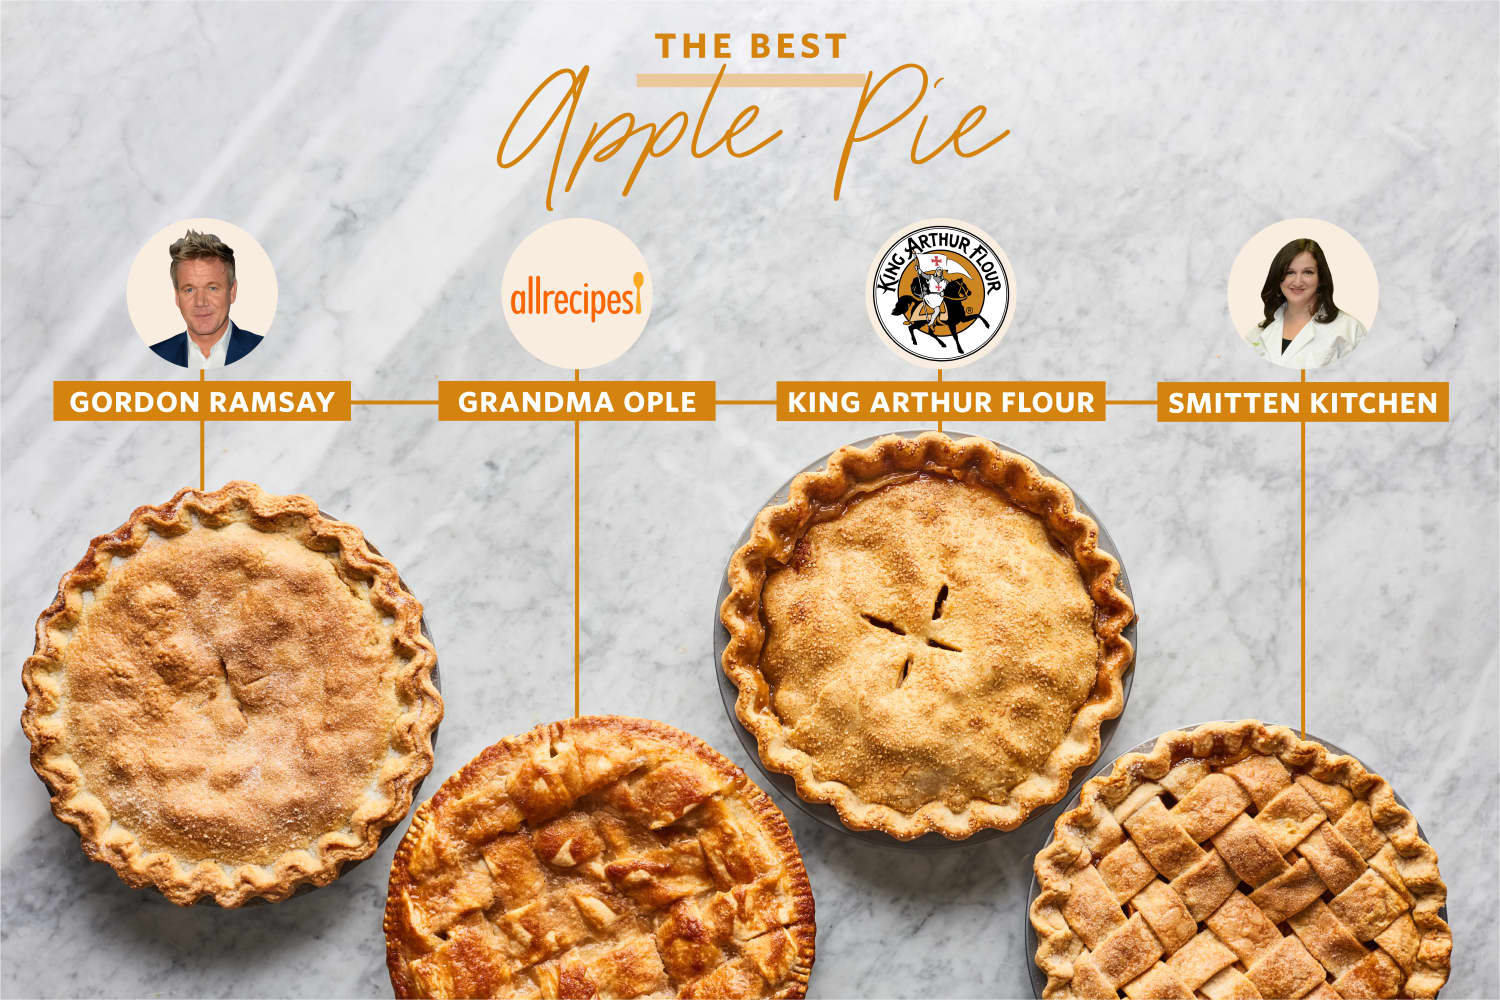 Which of These 4 Beloved Apple Pie Recipes Are Worth Making?